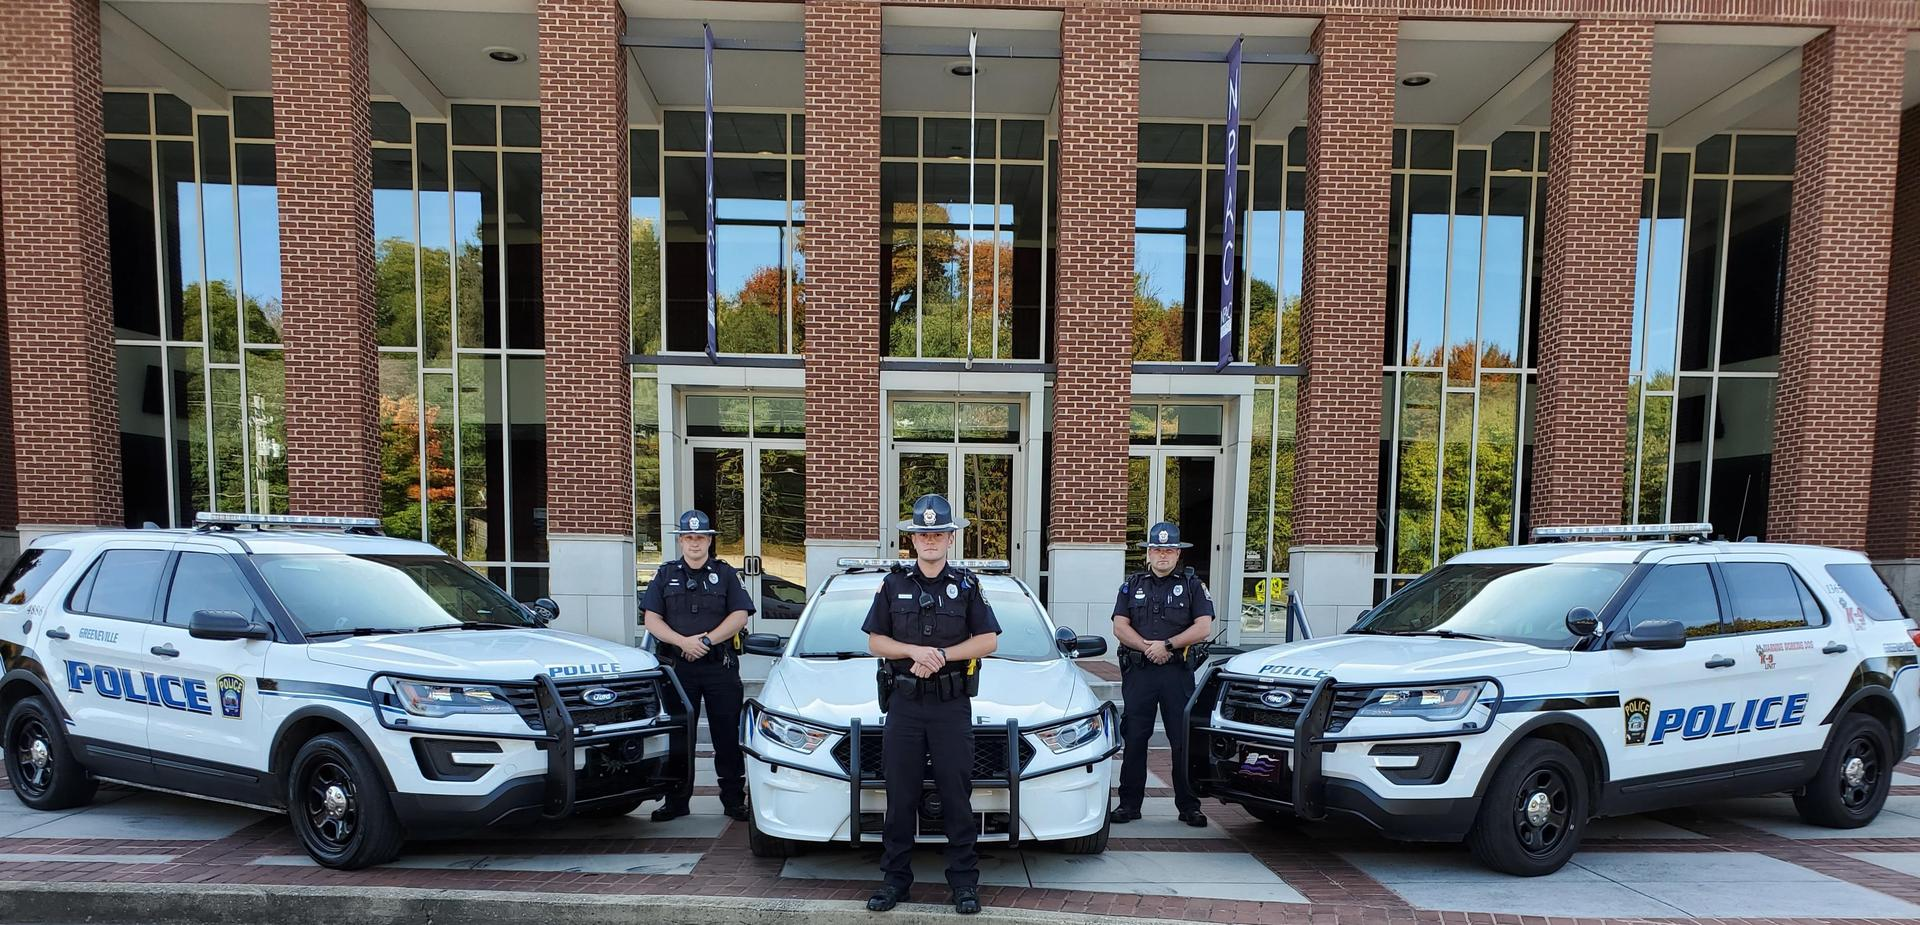 (Pictures of three Greeneville Police units and three officers. A white Ford Taurus with blue lettering  and Two white Ford Explorer with blue lettering.